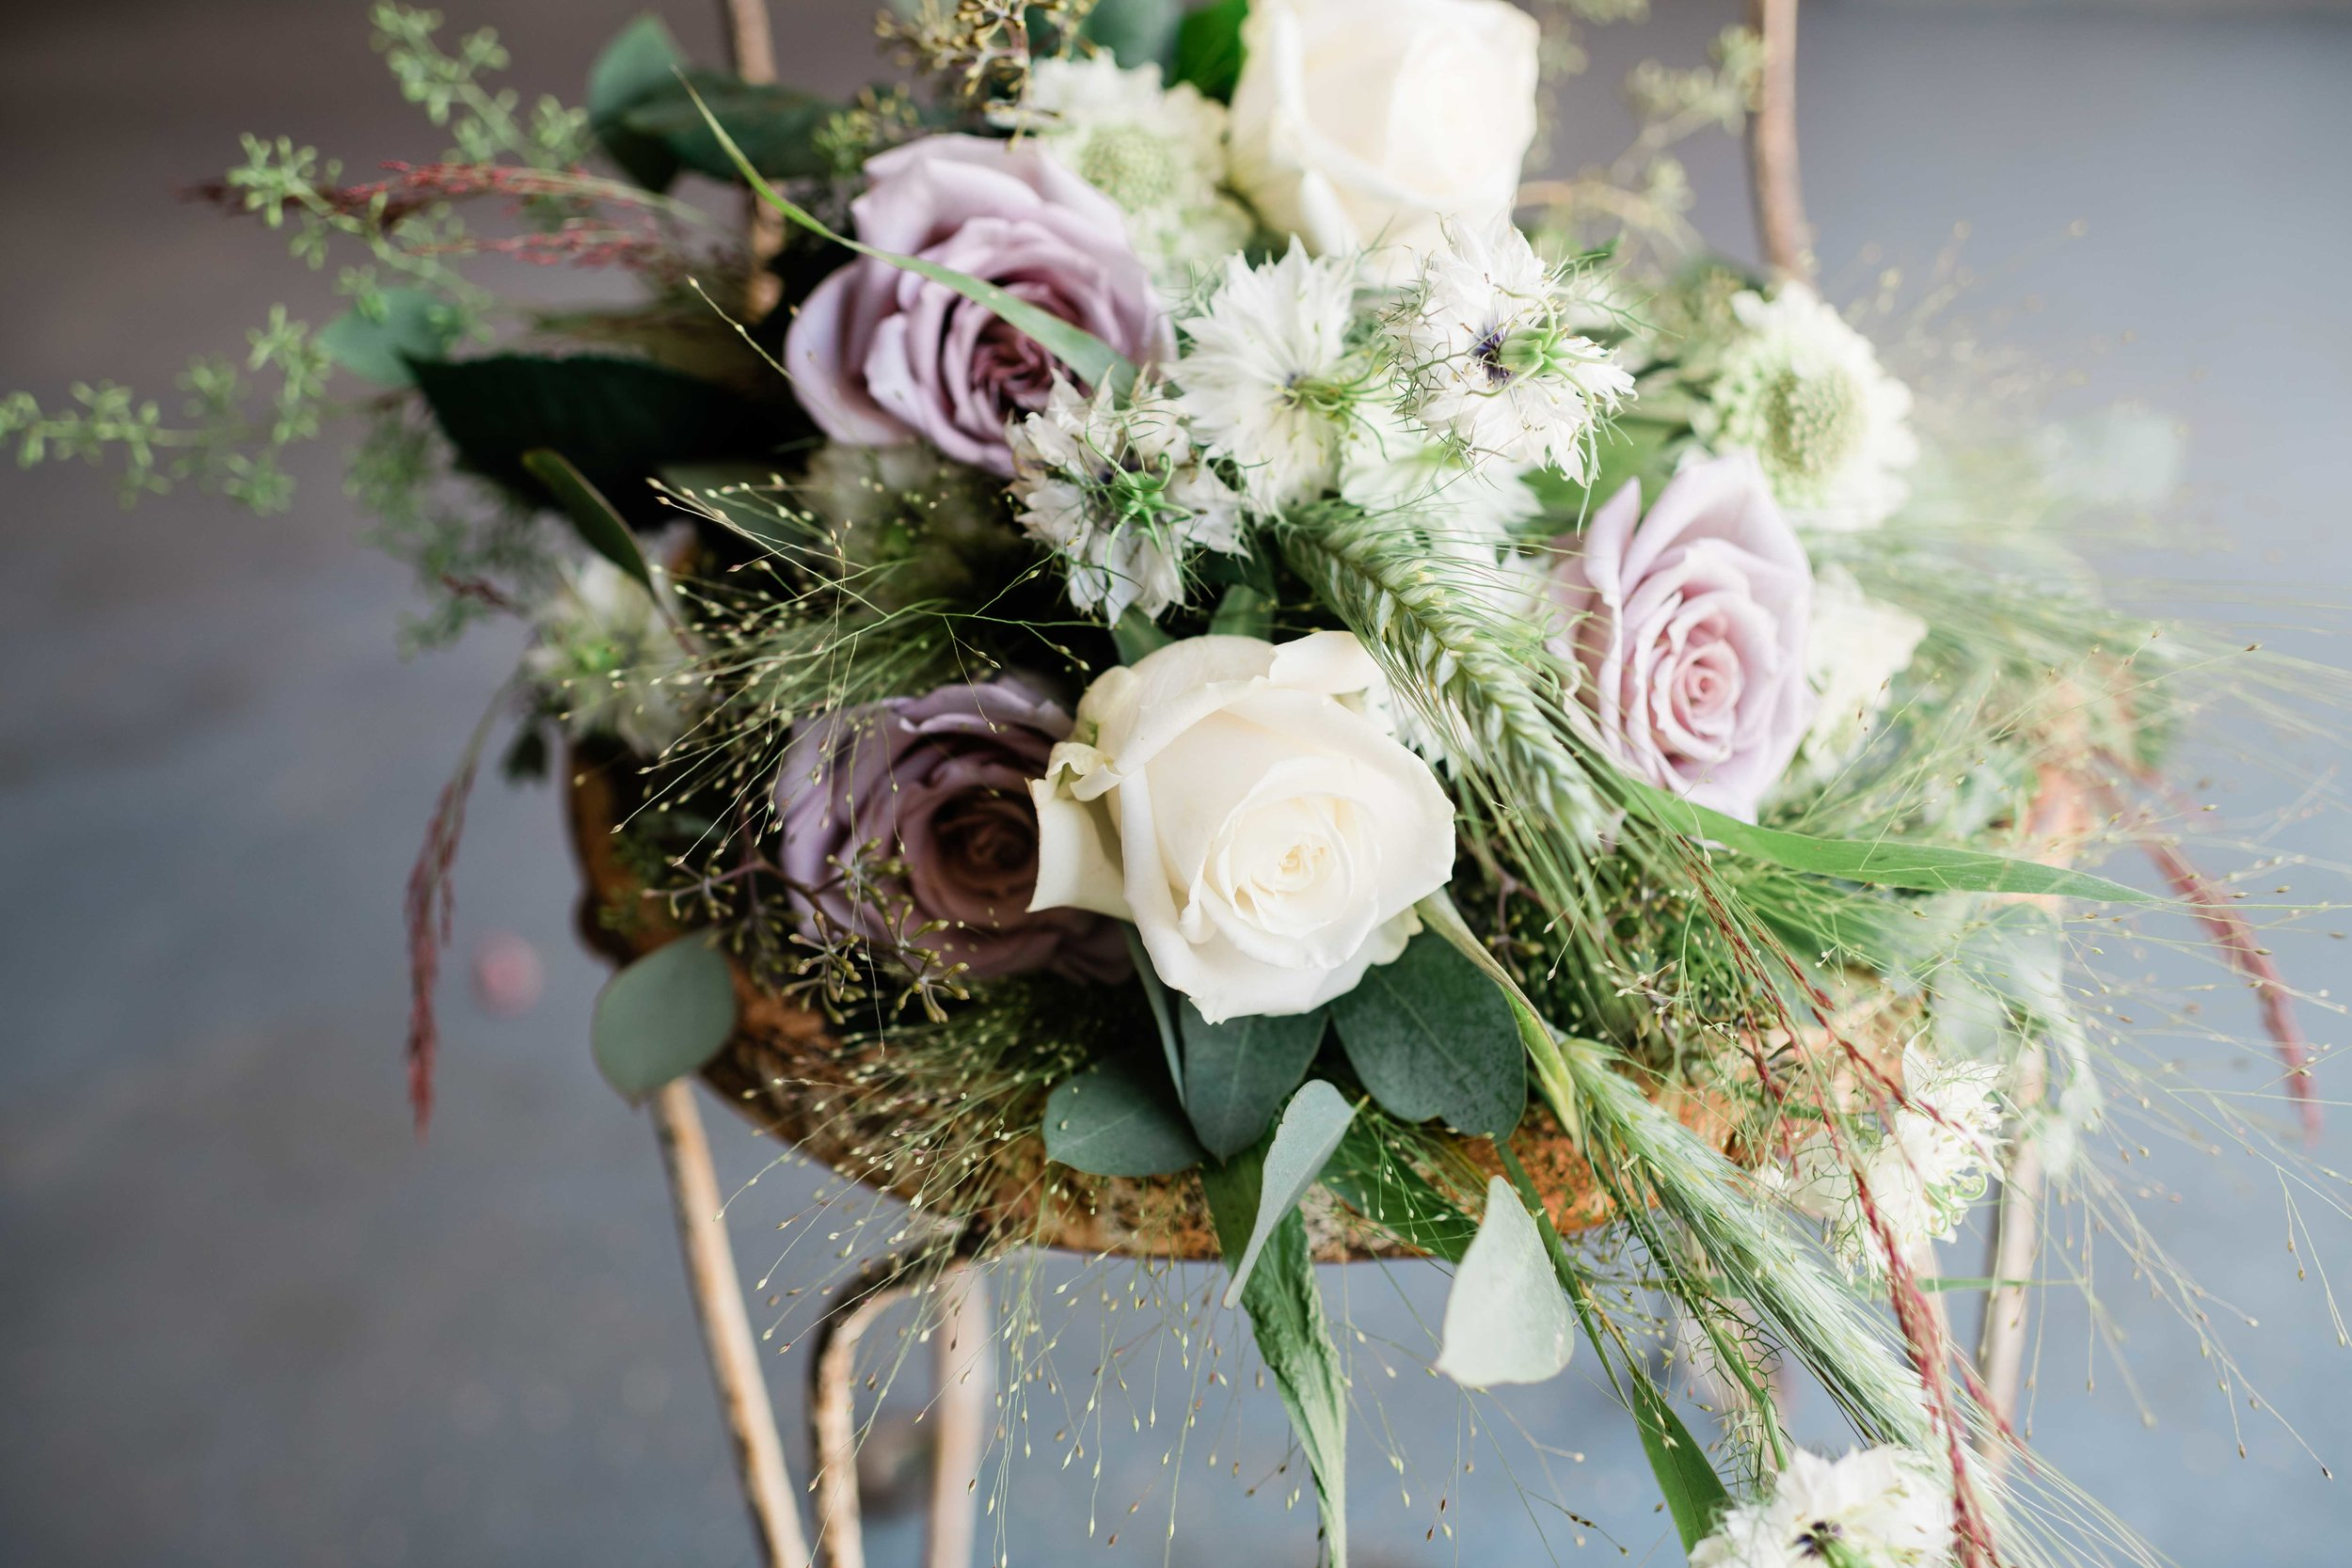 Bridal bouquet sitting on rusty chair